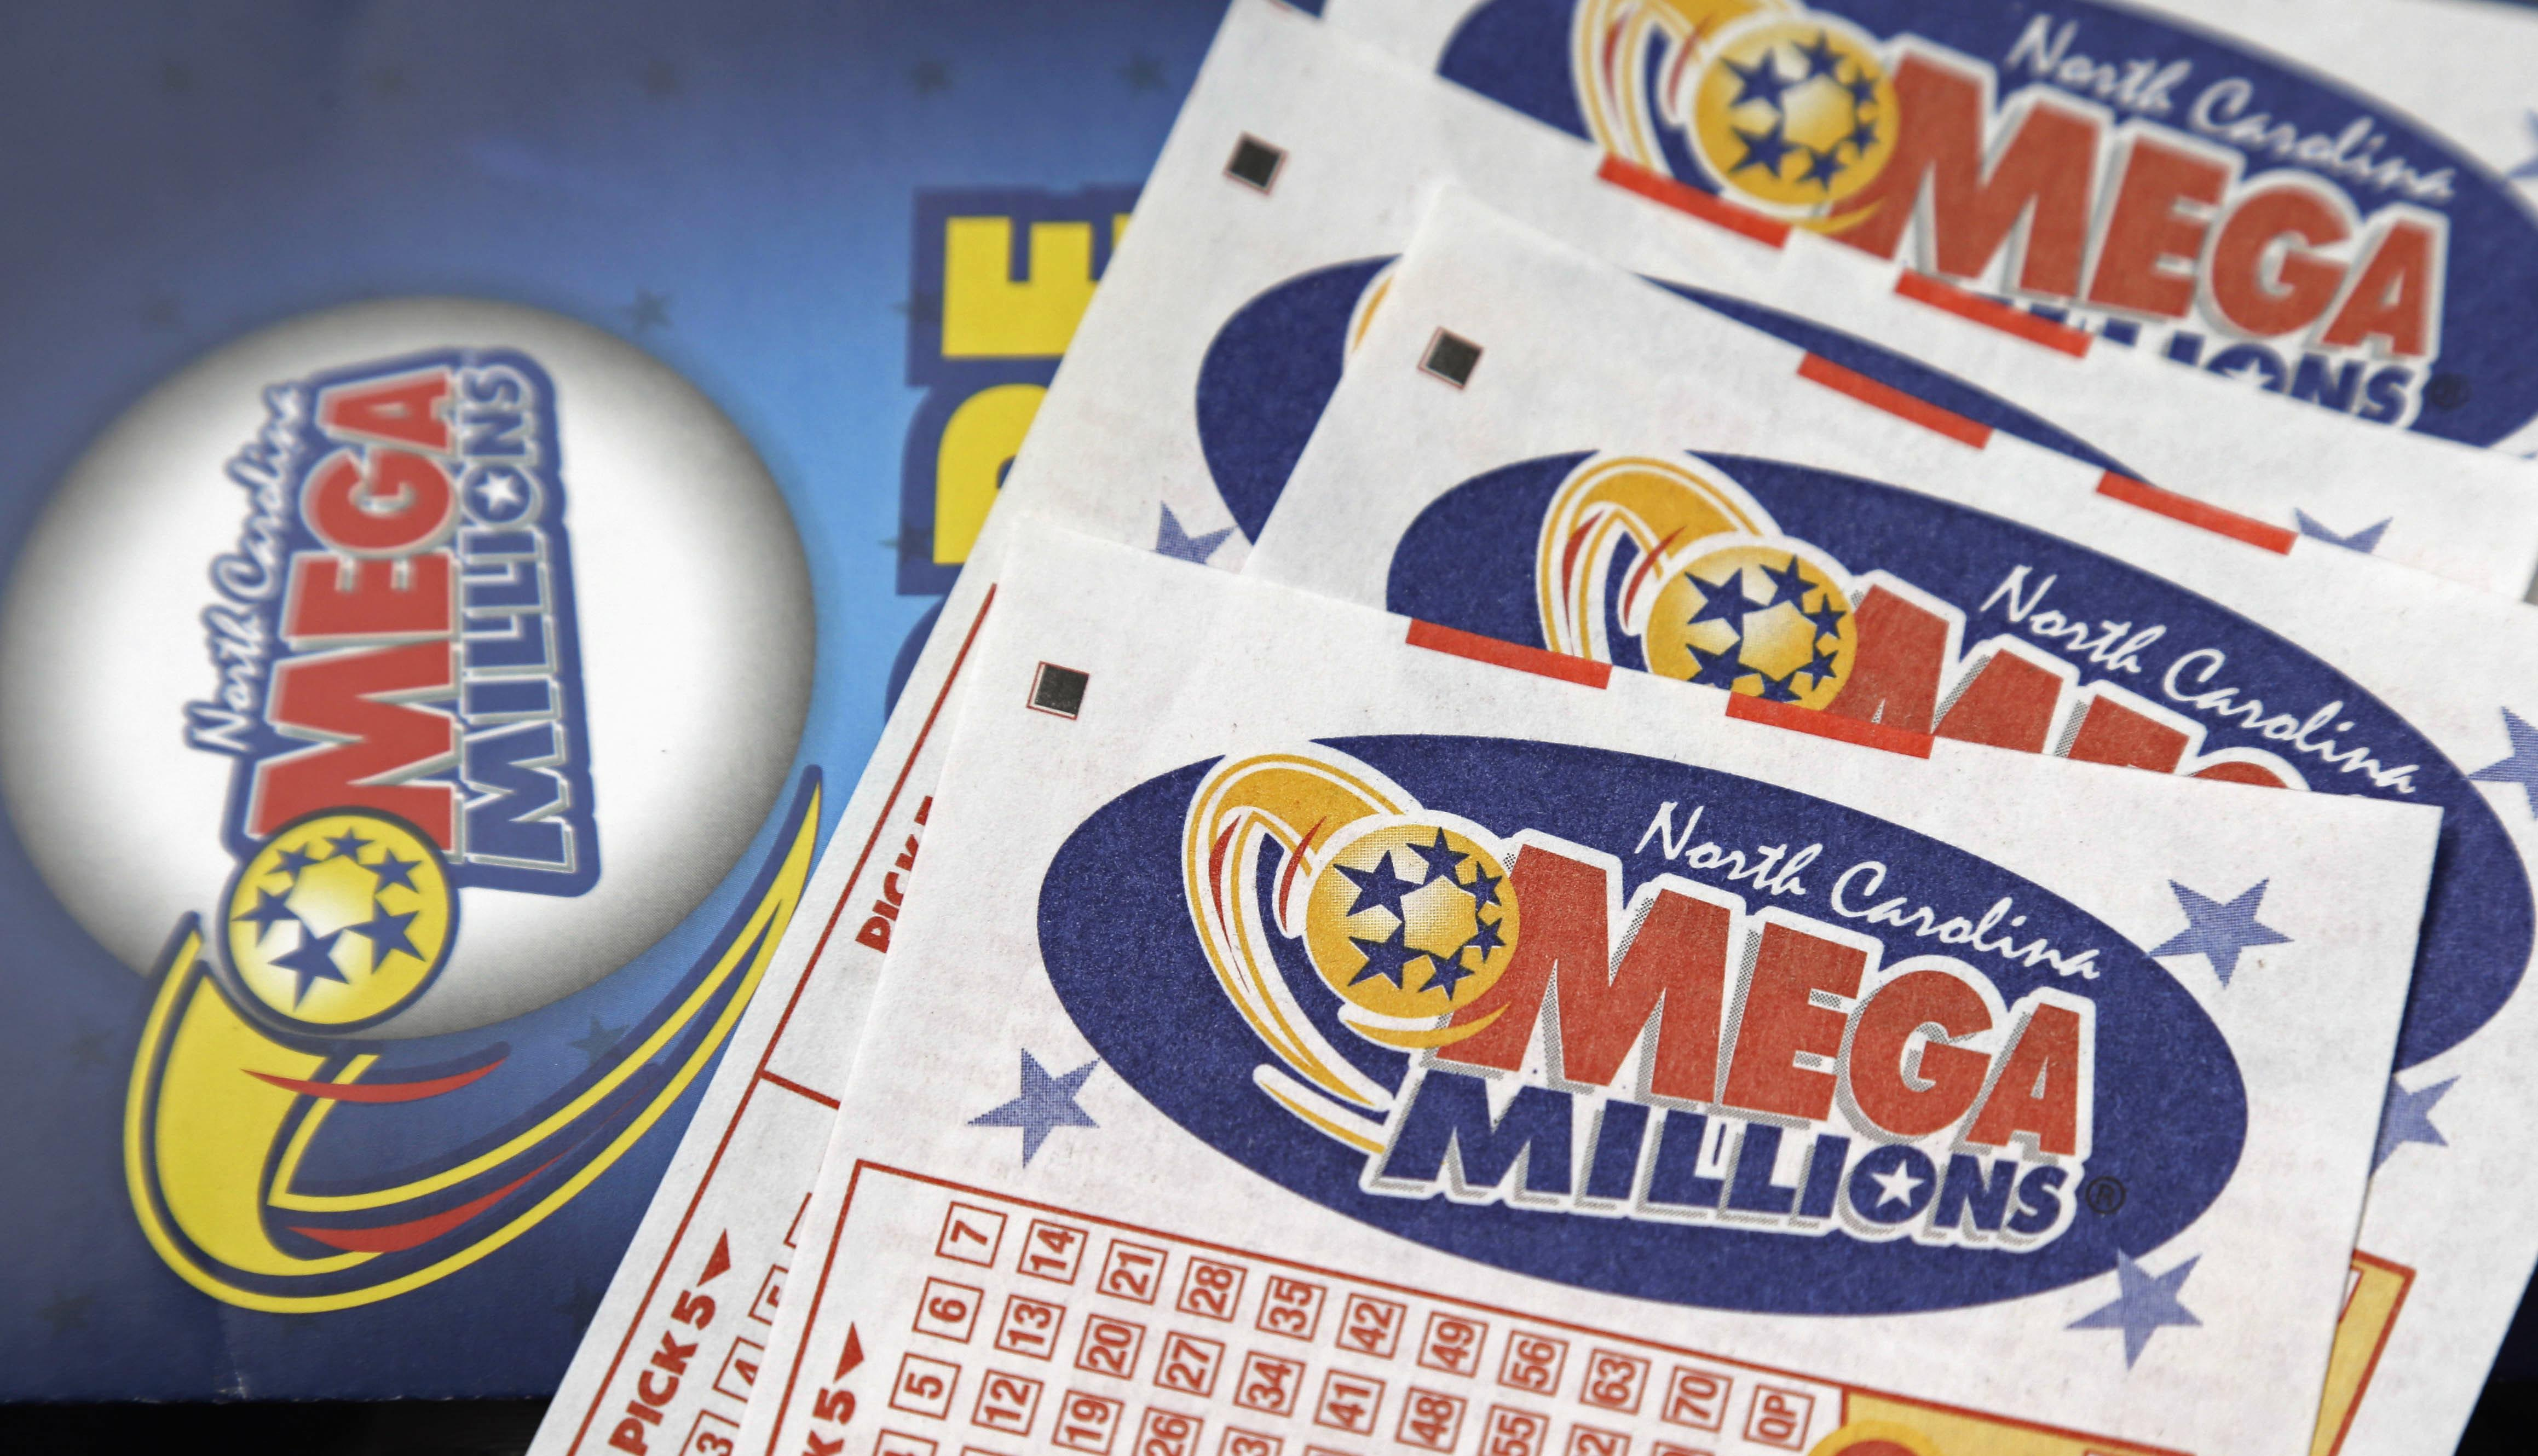 450 Million Mega Millions Winning Ticket Sold In Florida The